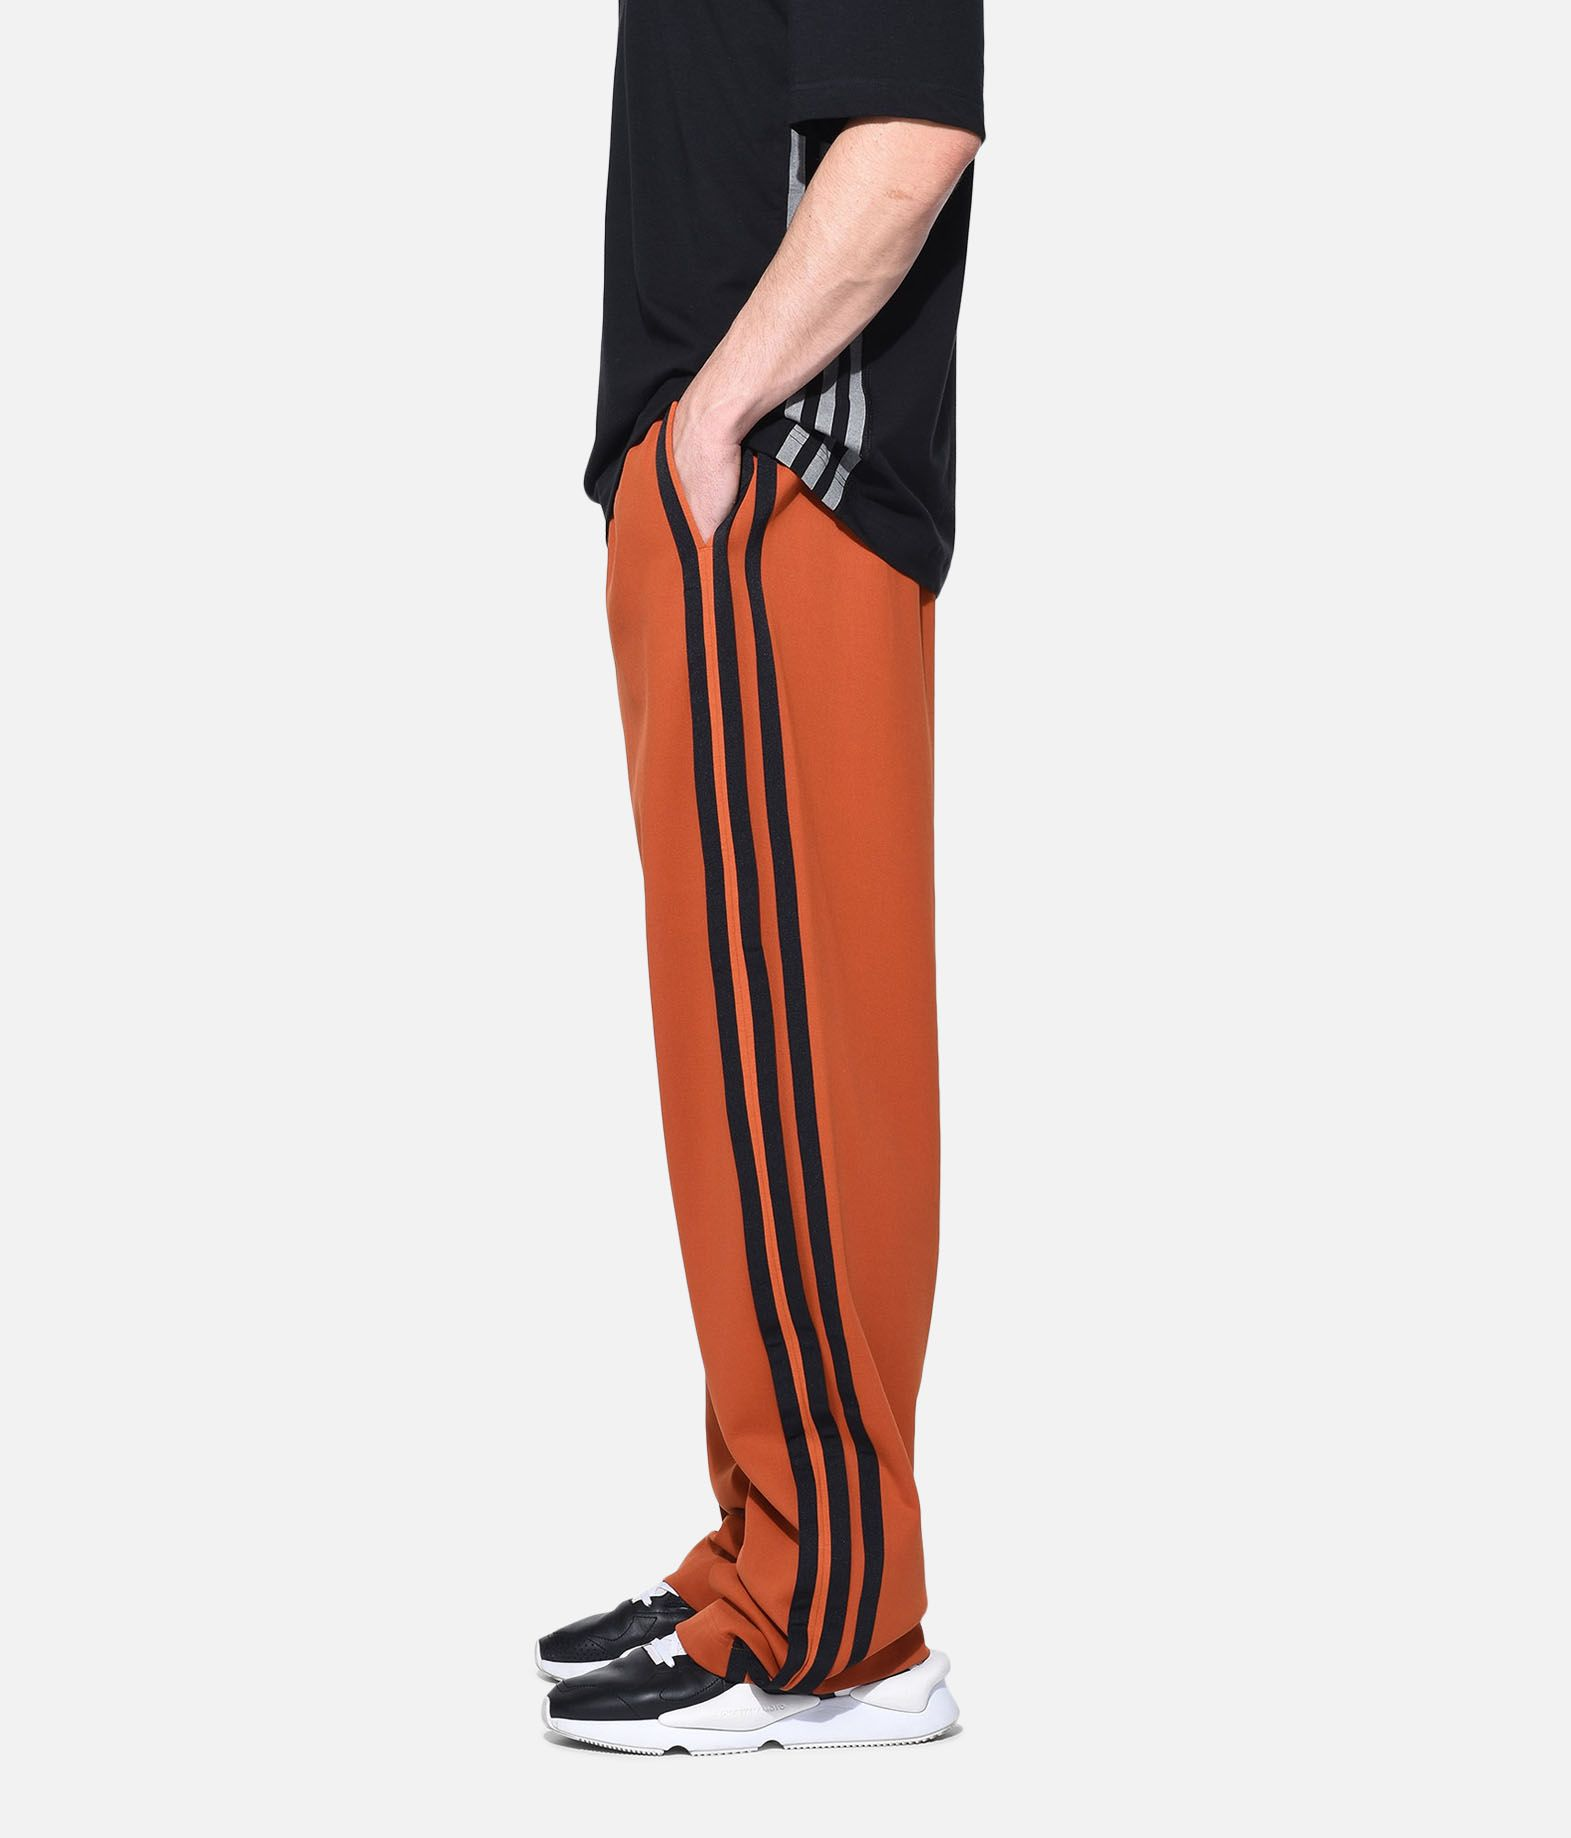 Y-3 Y-3 3-Stripes Selvedge Wide Pants Tracksuit pants Man e